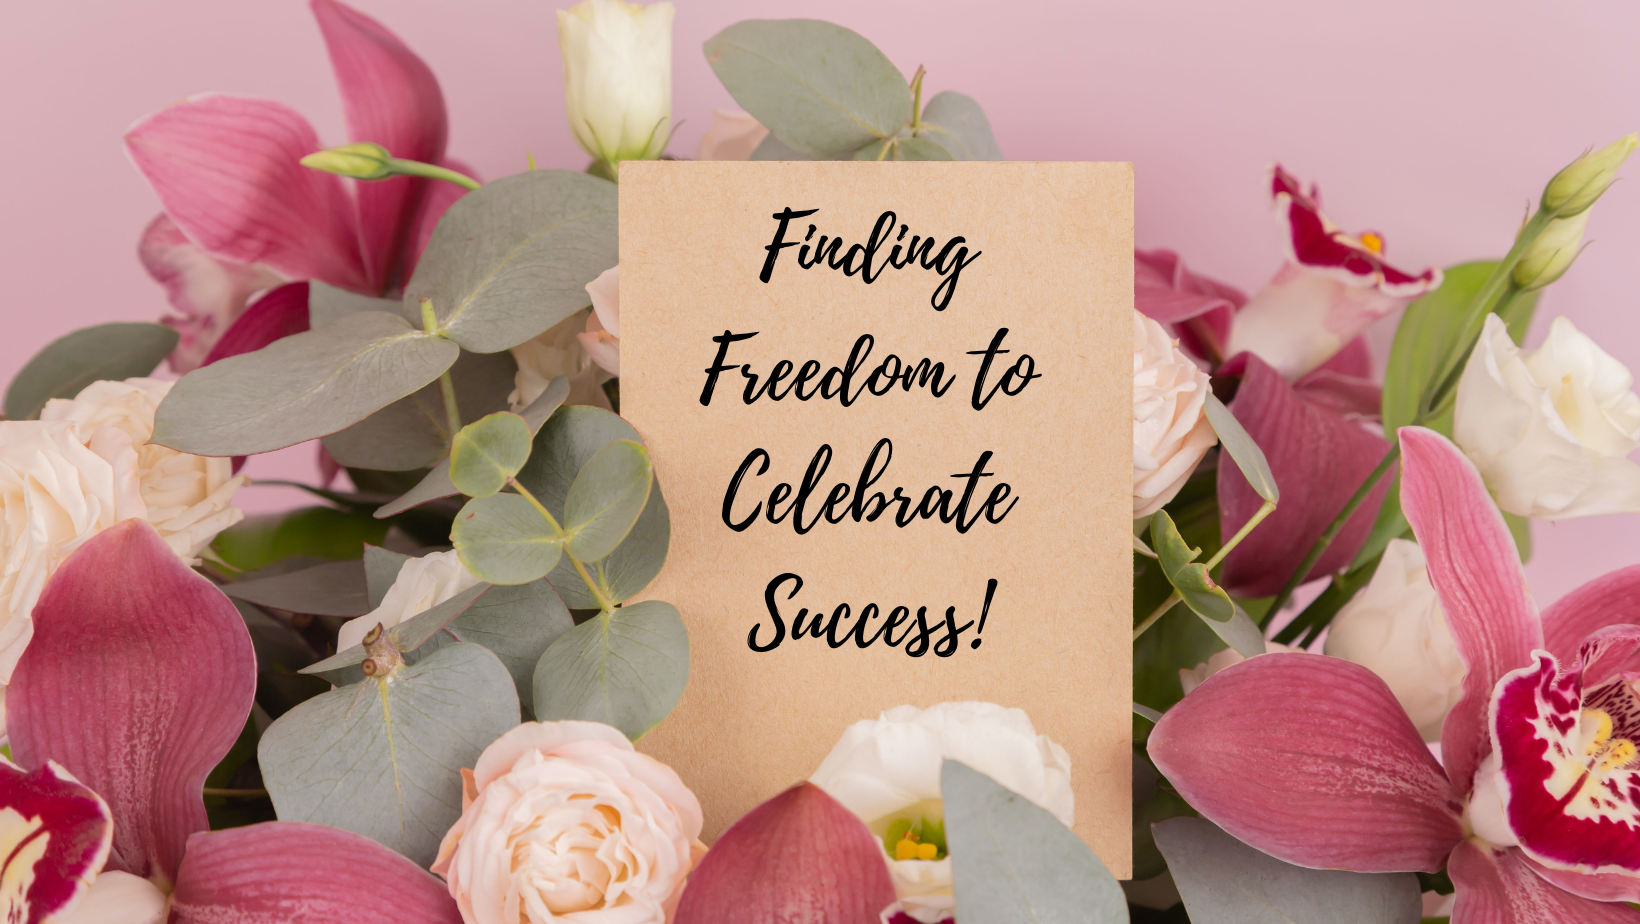 Finding Freedom to Celebrate Success!